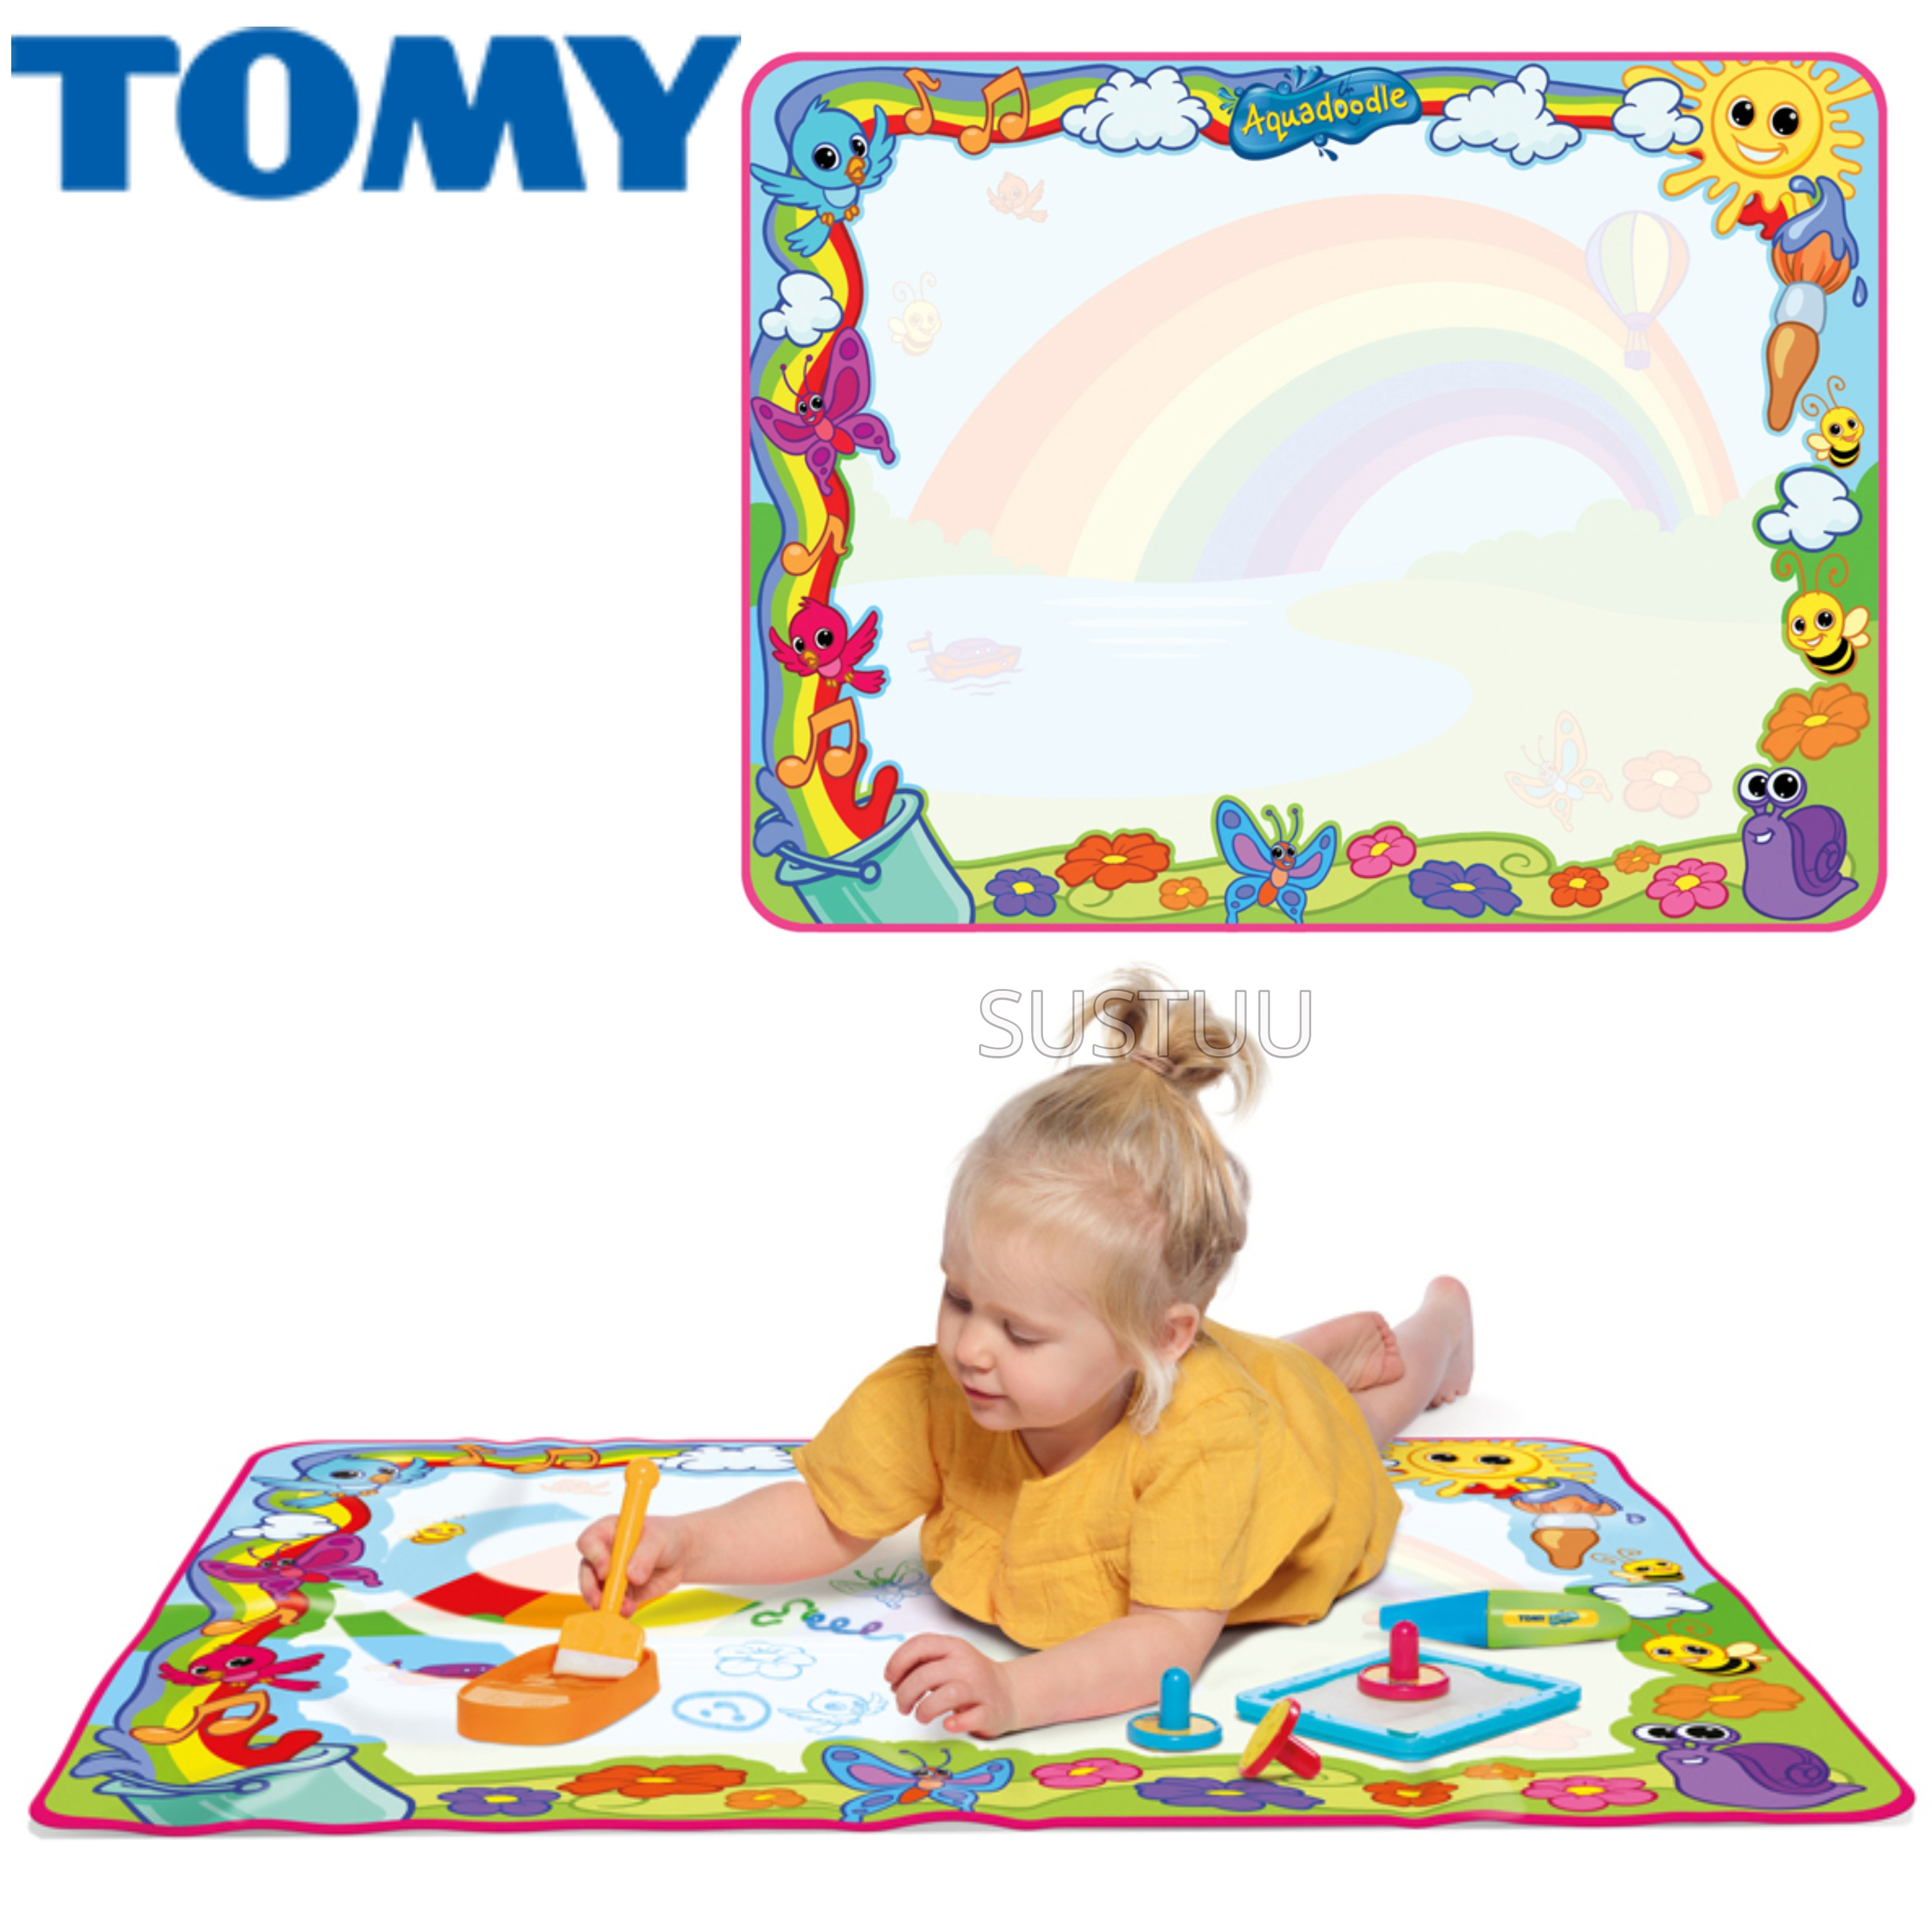 Tomy Aquadoodle-Super Rainbow Deluxe  Childrens Mess Free Drawing Fun With Pen   New